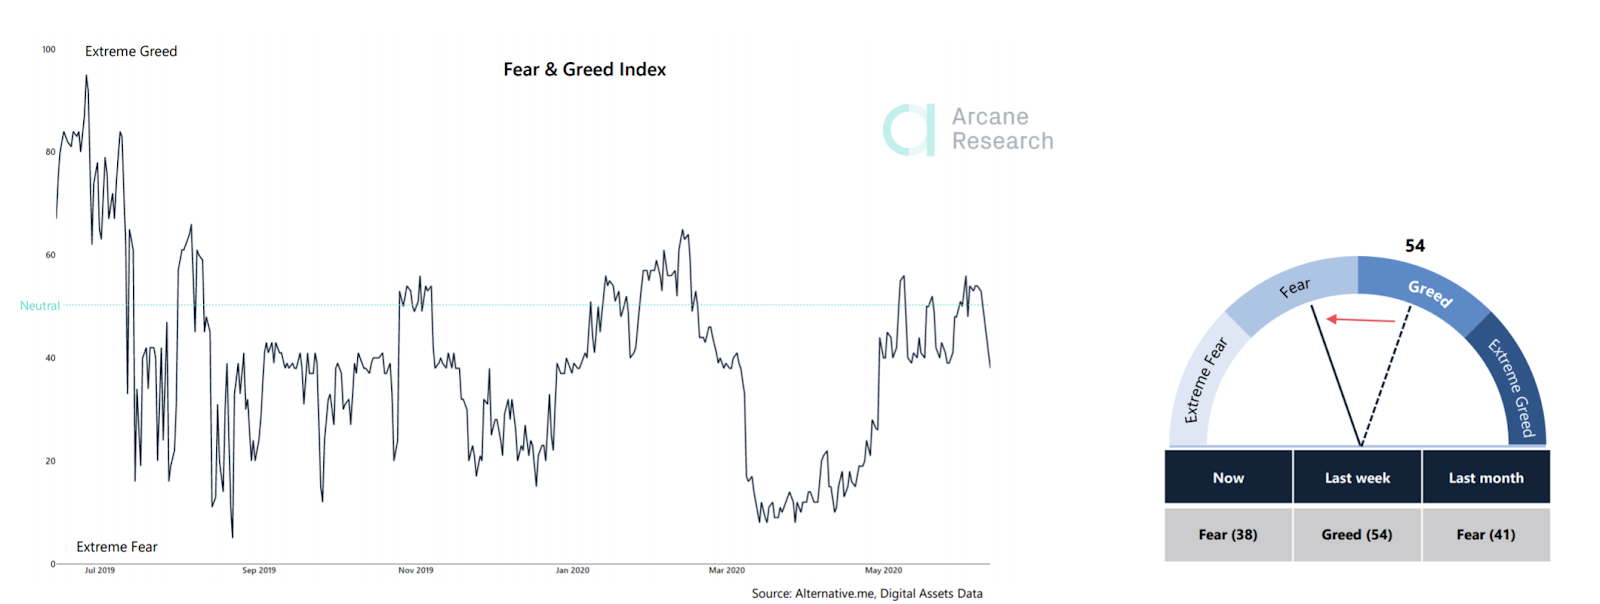 Fear and Greed Index across all markets move to fear